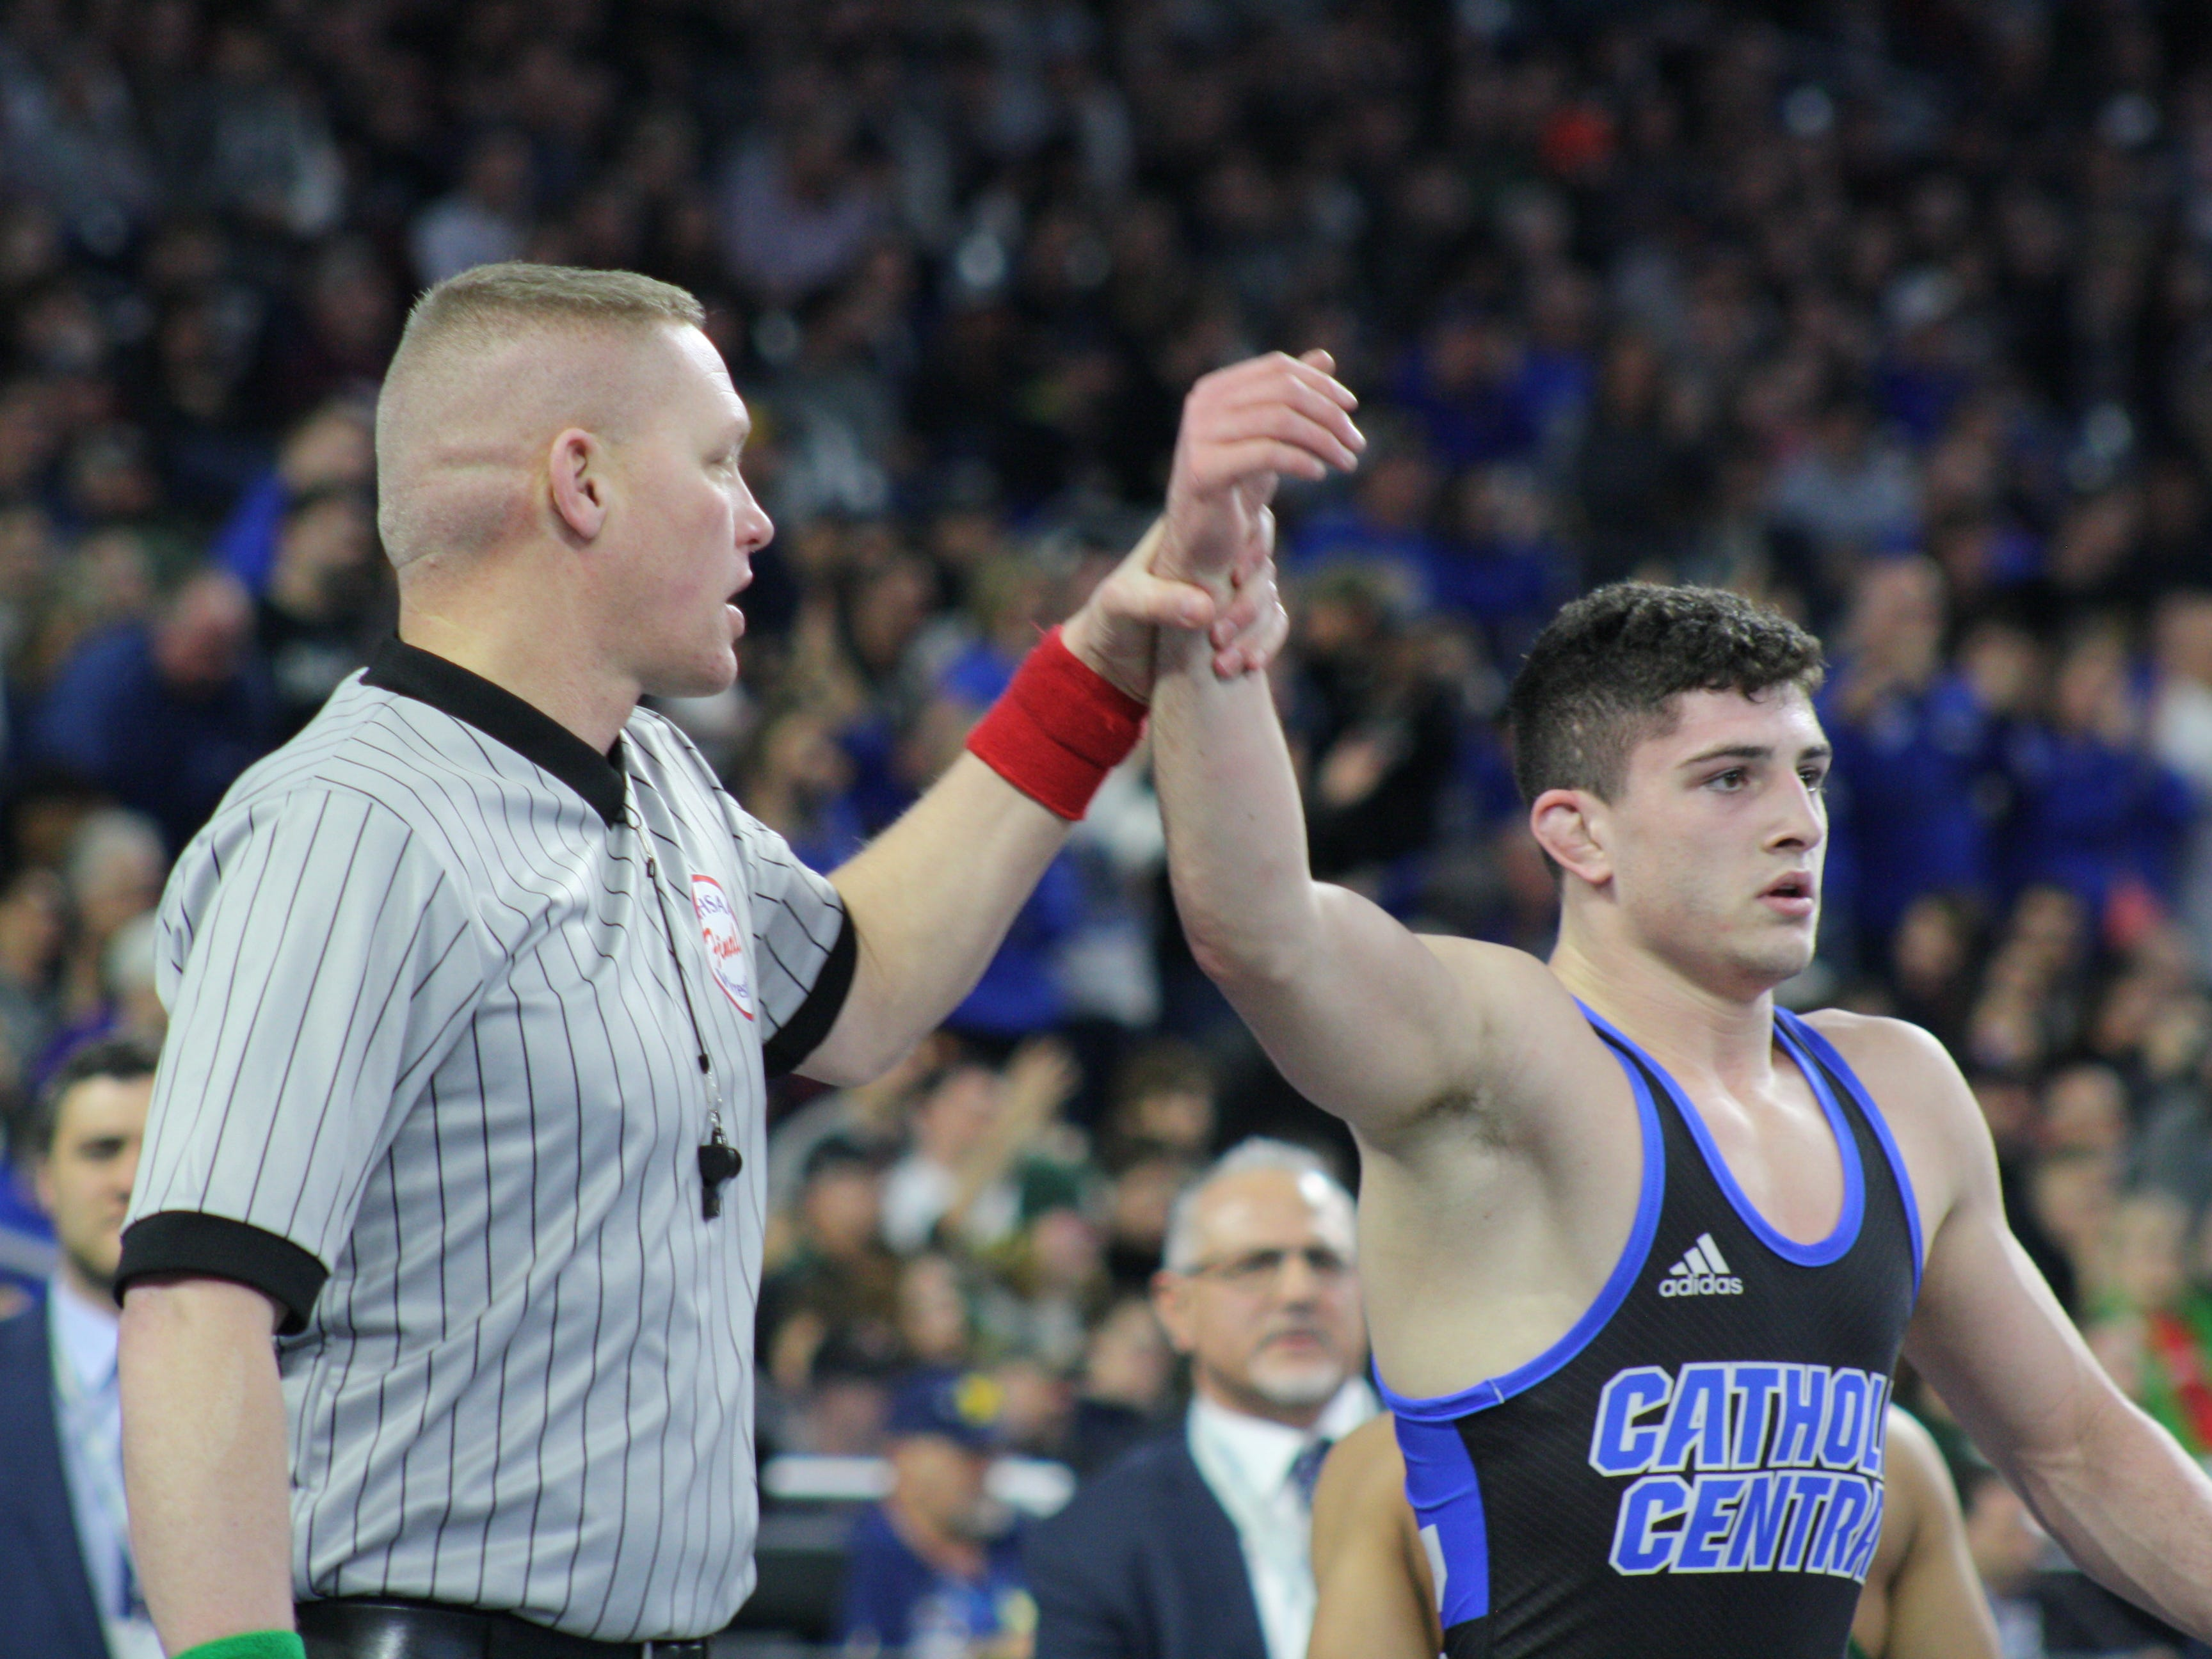 Novi Detroit Catholic Central's Cameron Amine wins his third title in four years by taking down Jaden Fisher of Lake Orion, 11-3.